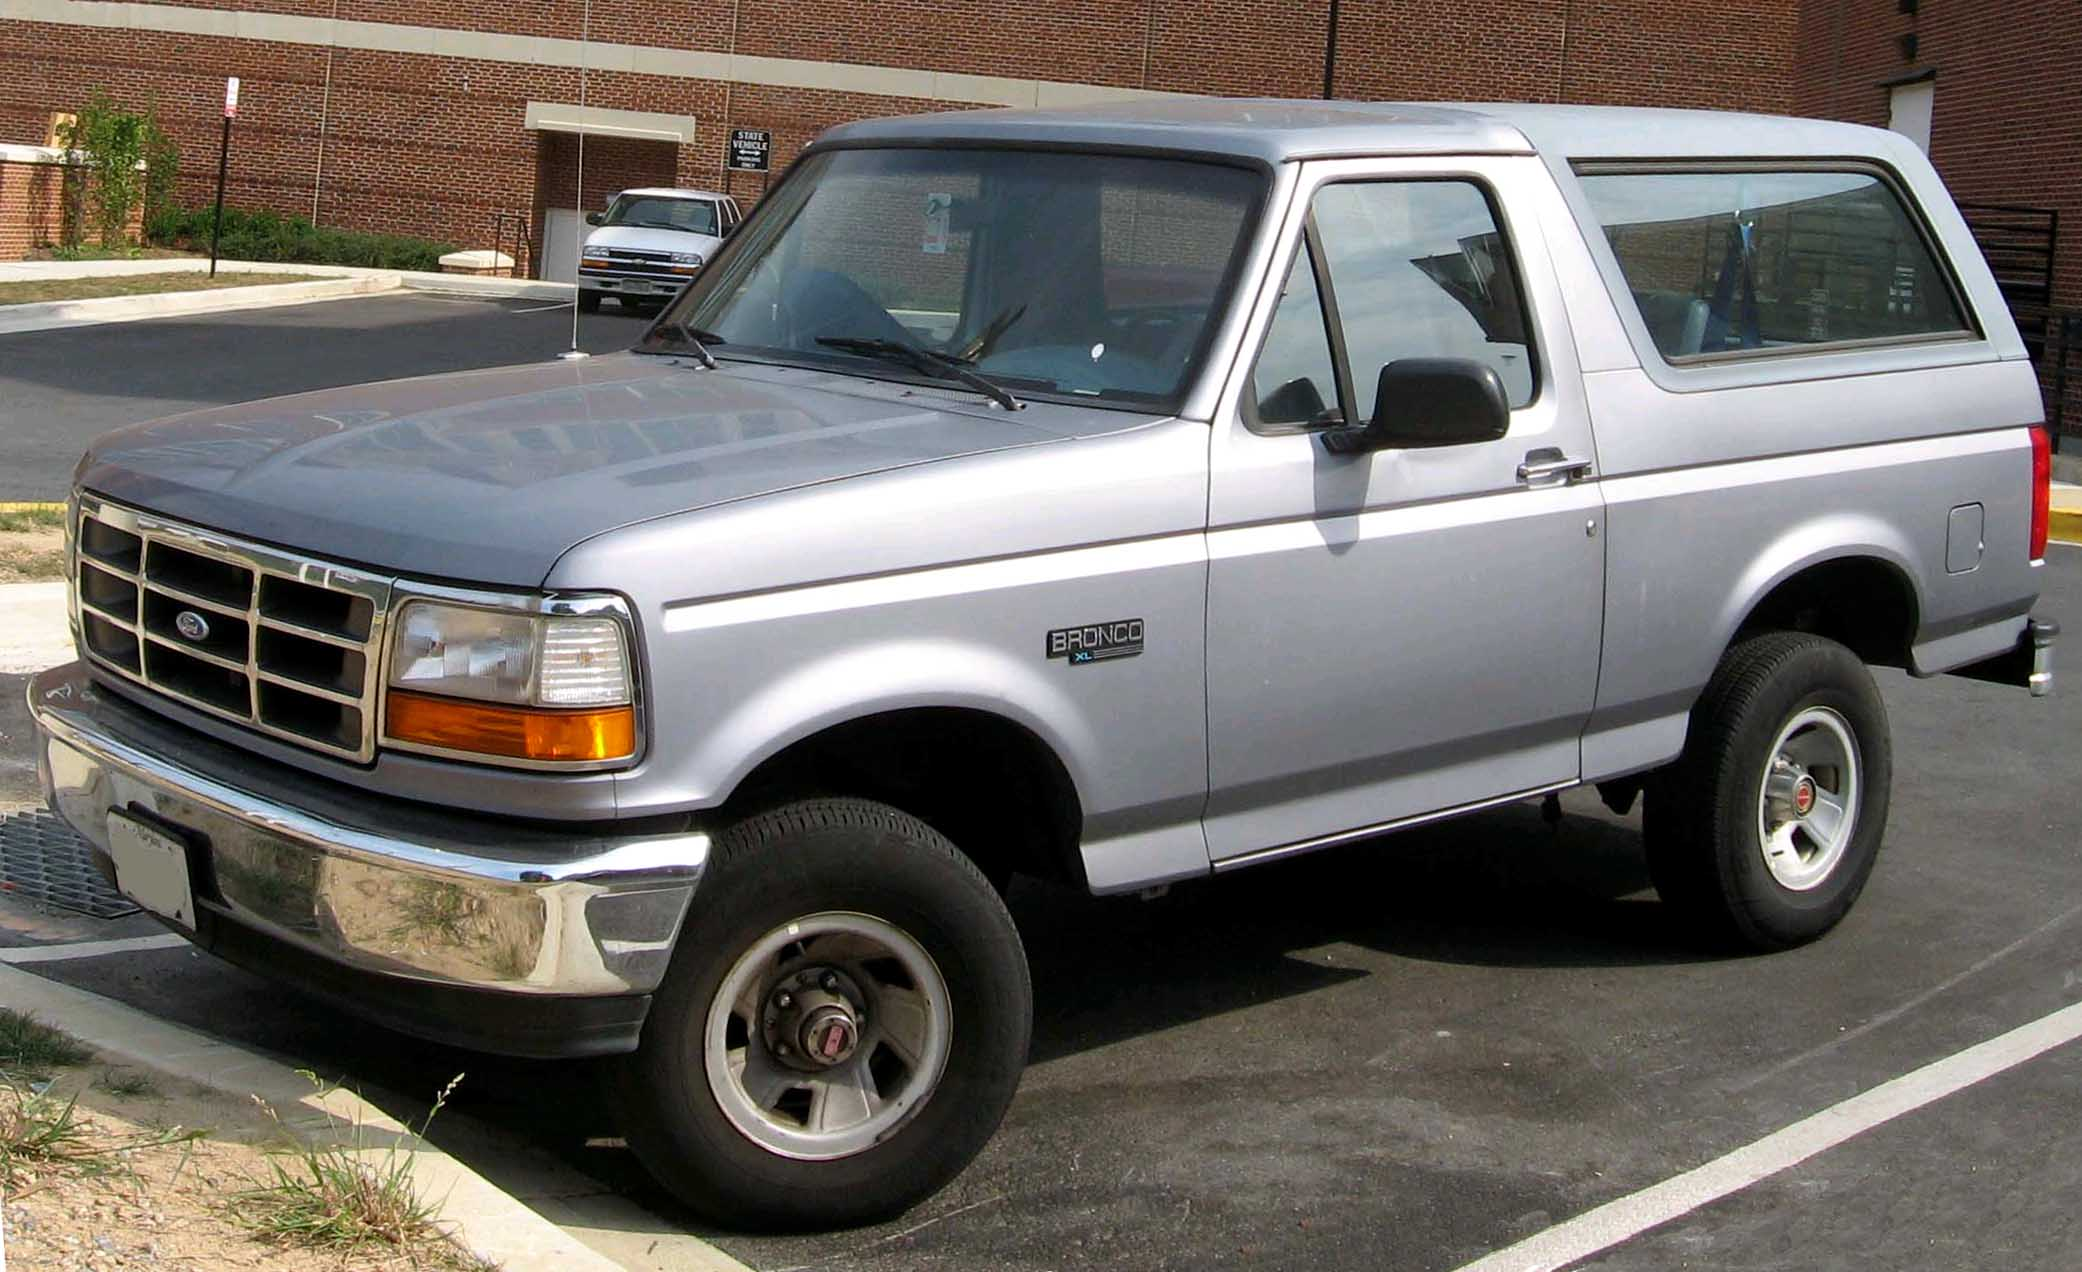 Ford Bronco - Tractor & Construction Plant Wiki - The classic vehicle